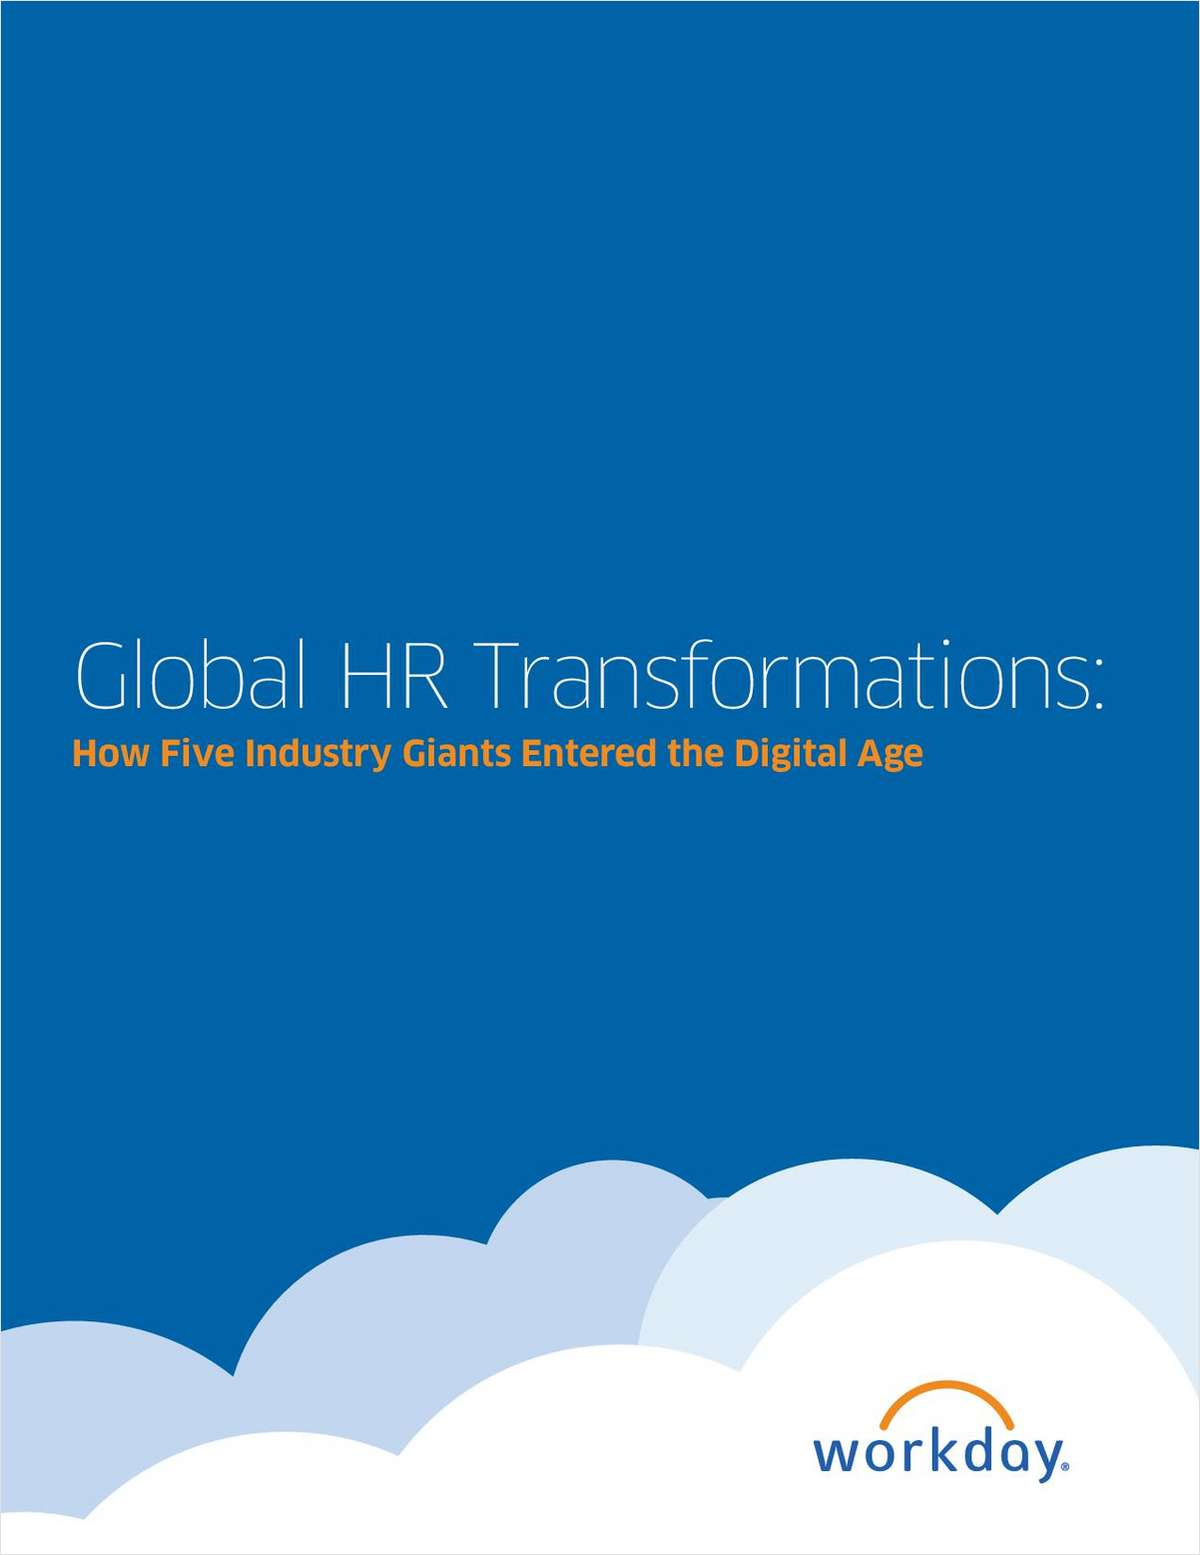 Global HR Transformations: How Five Industry Giants Entered the Digital Age